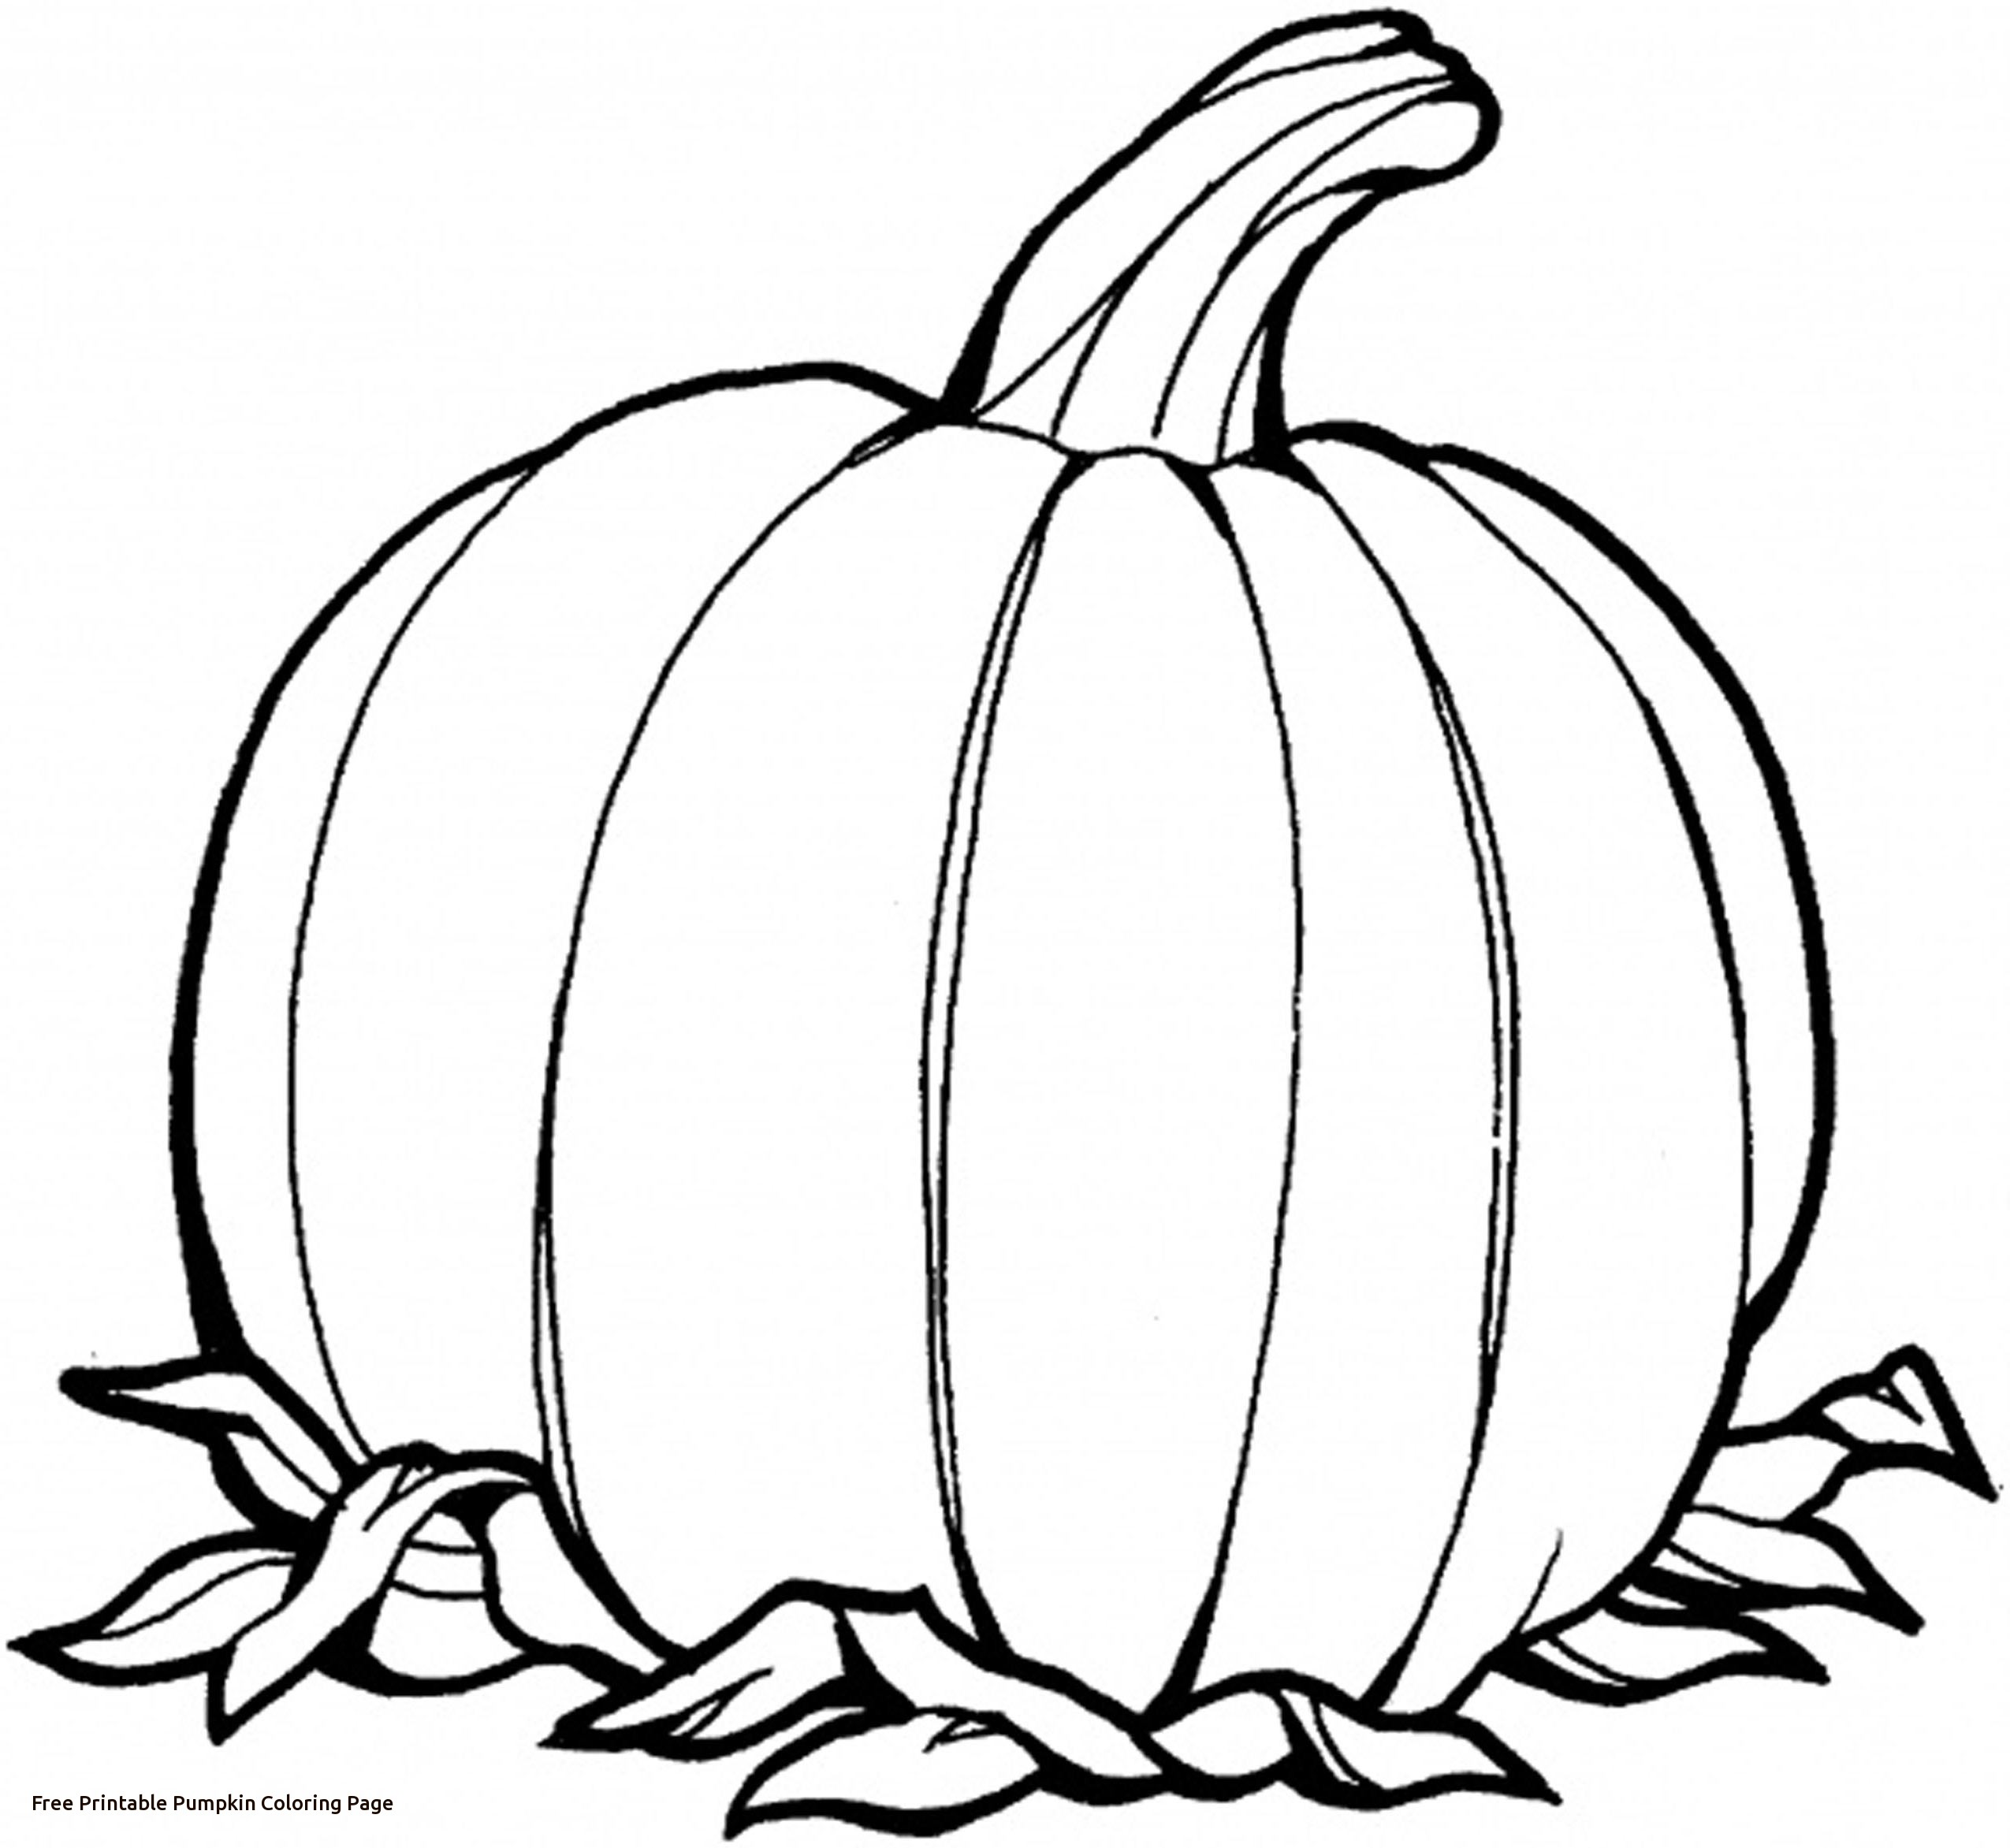 pumpkin coloring pages free printable 30 free printable pumpkin coloring pages scribblefun free pumpkin pages printable coloring